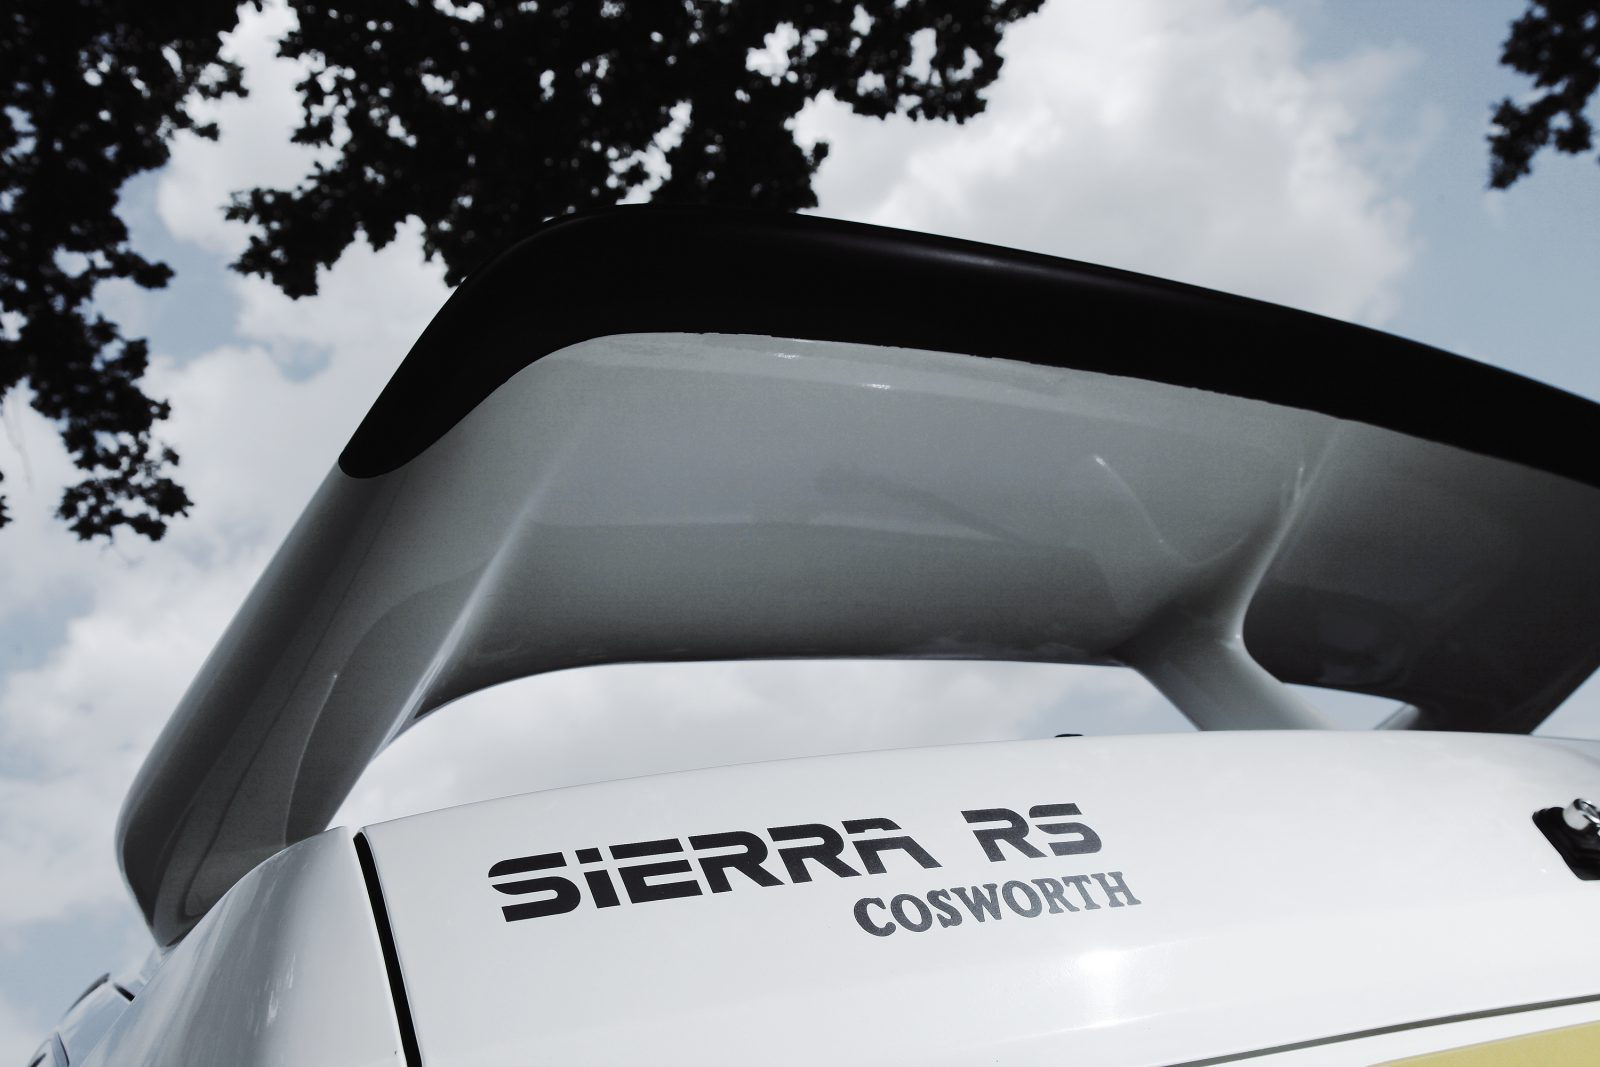 Ford Sierra RS Cosworth spoiler